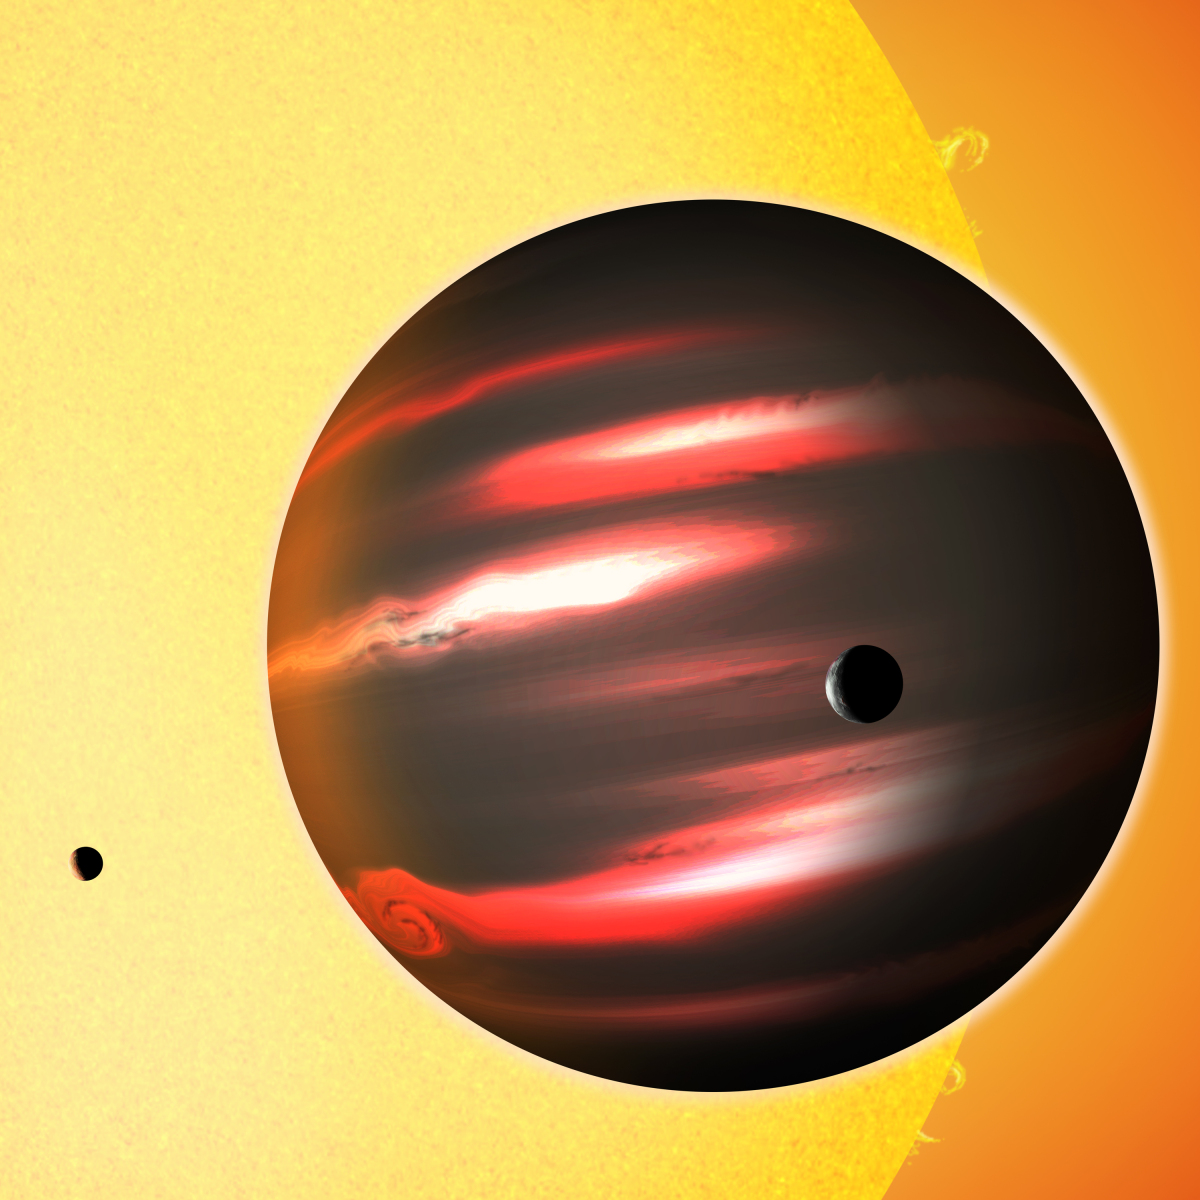 The distant exoplanet TrES-2b, shown here in an artist's conception, is darker than the blackest coal.